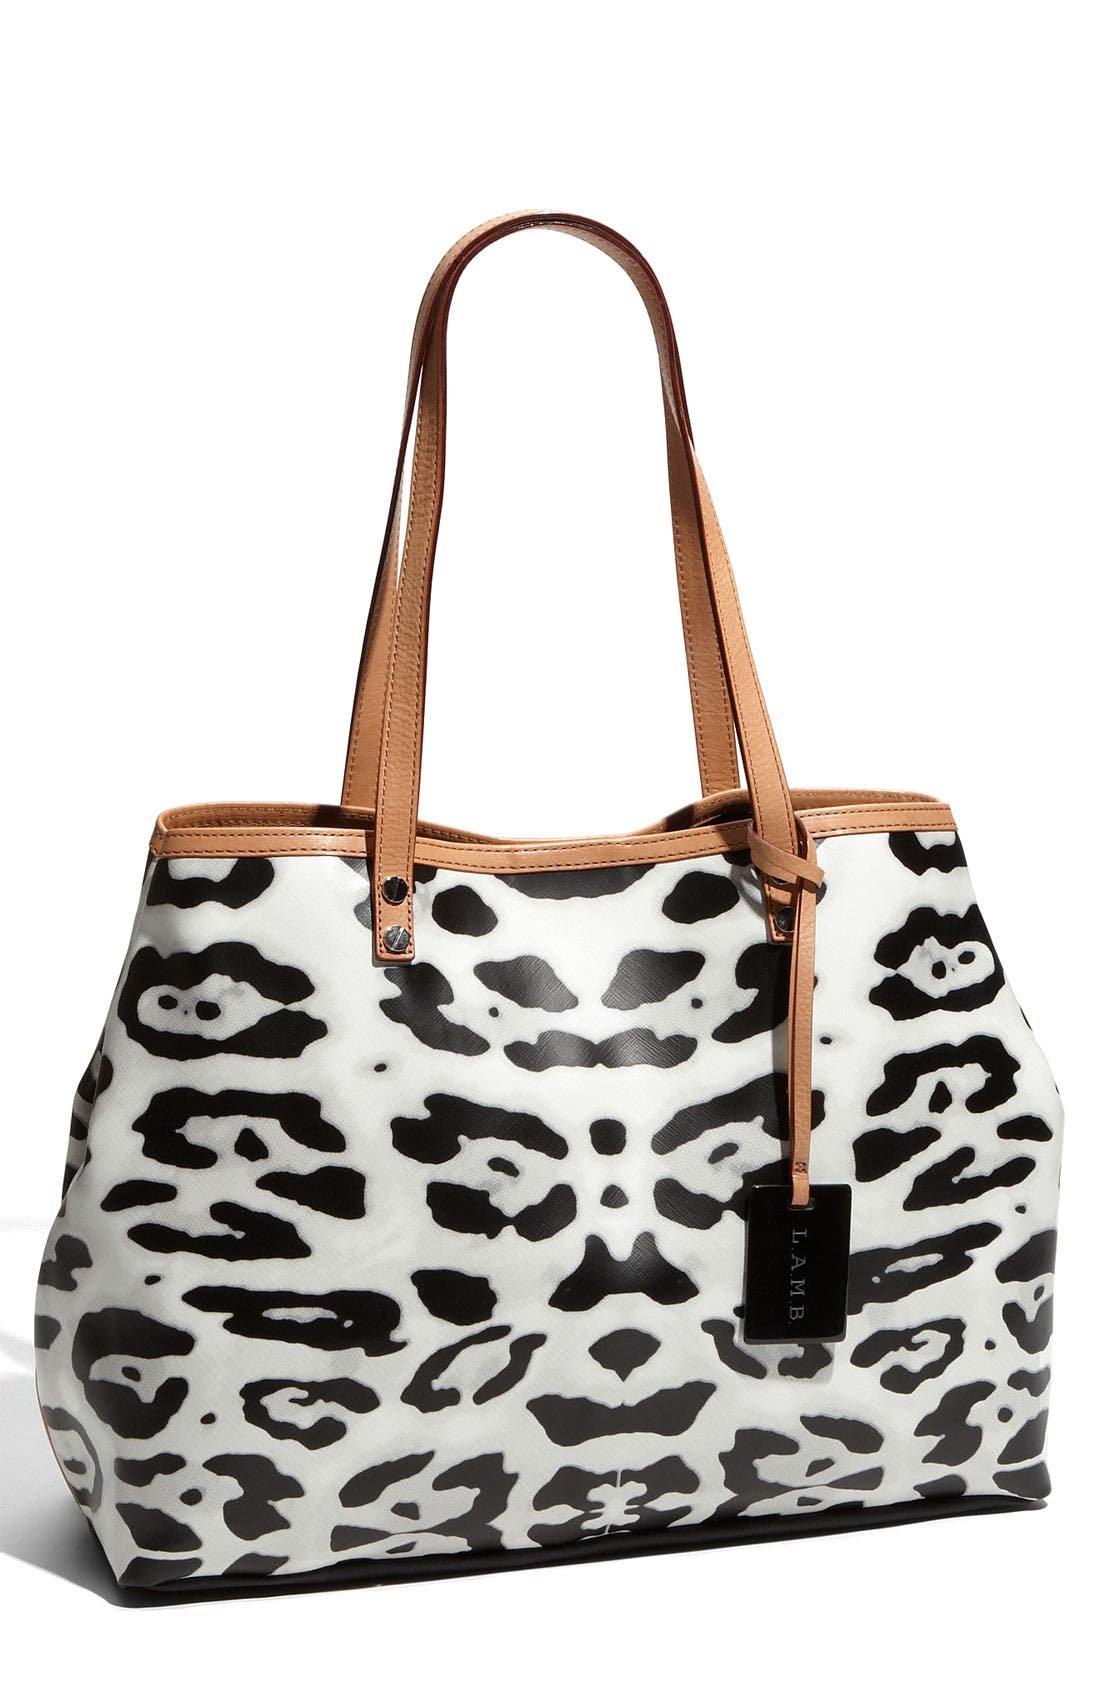 Main Image - L.A.M.B. 'Signature Williamsfield' Tote